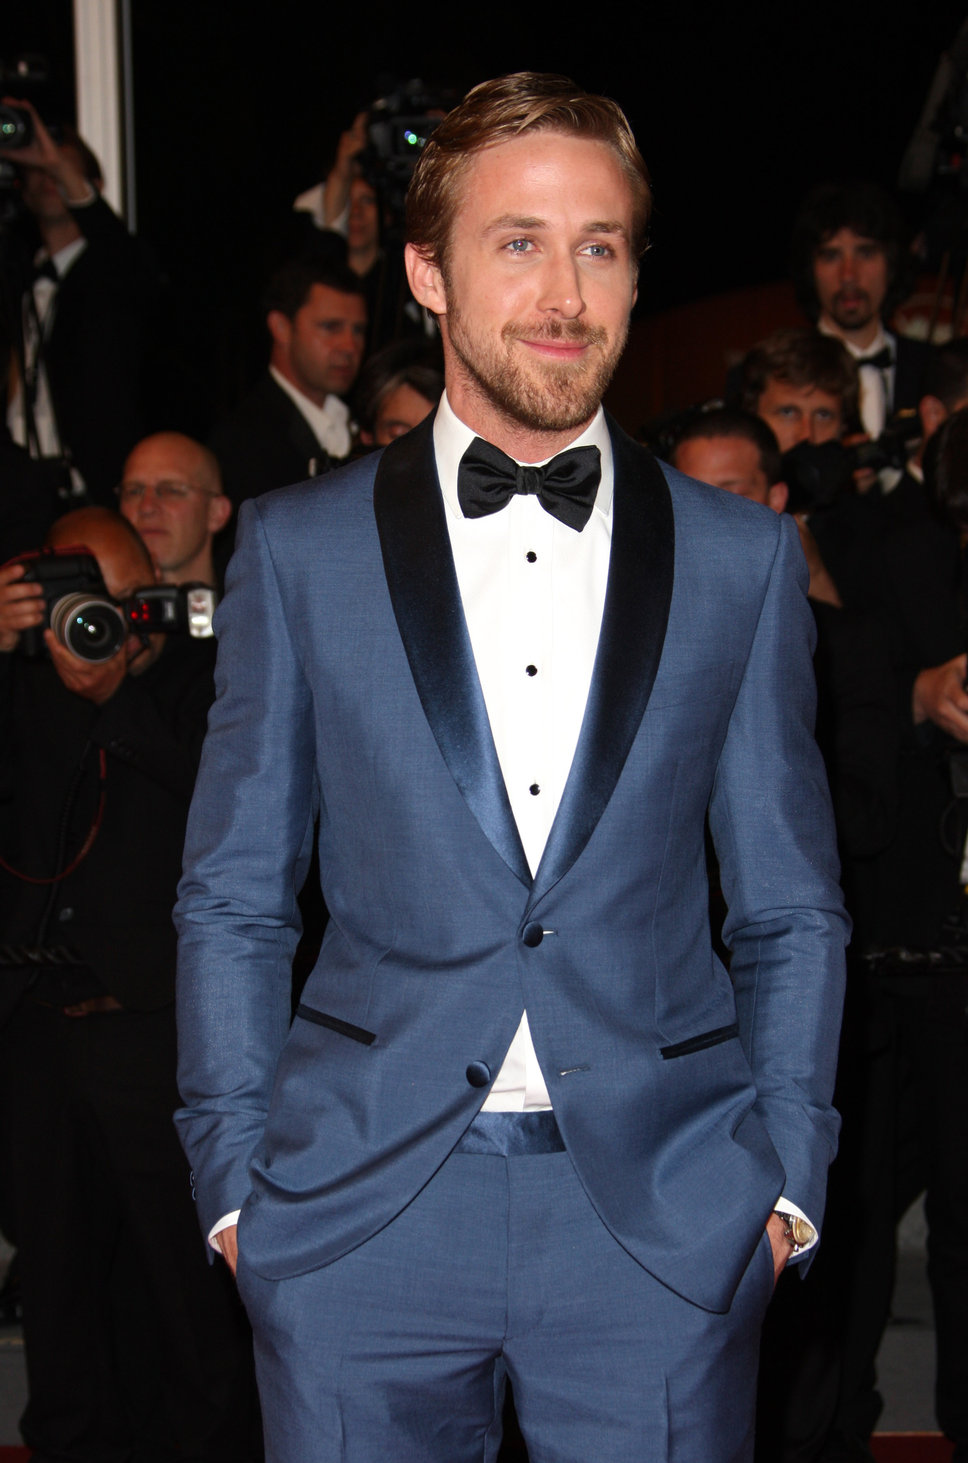 Ryan Gosling lookin' sharp in a navy tux!!